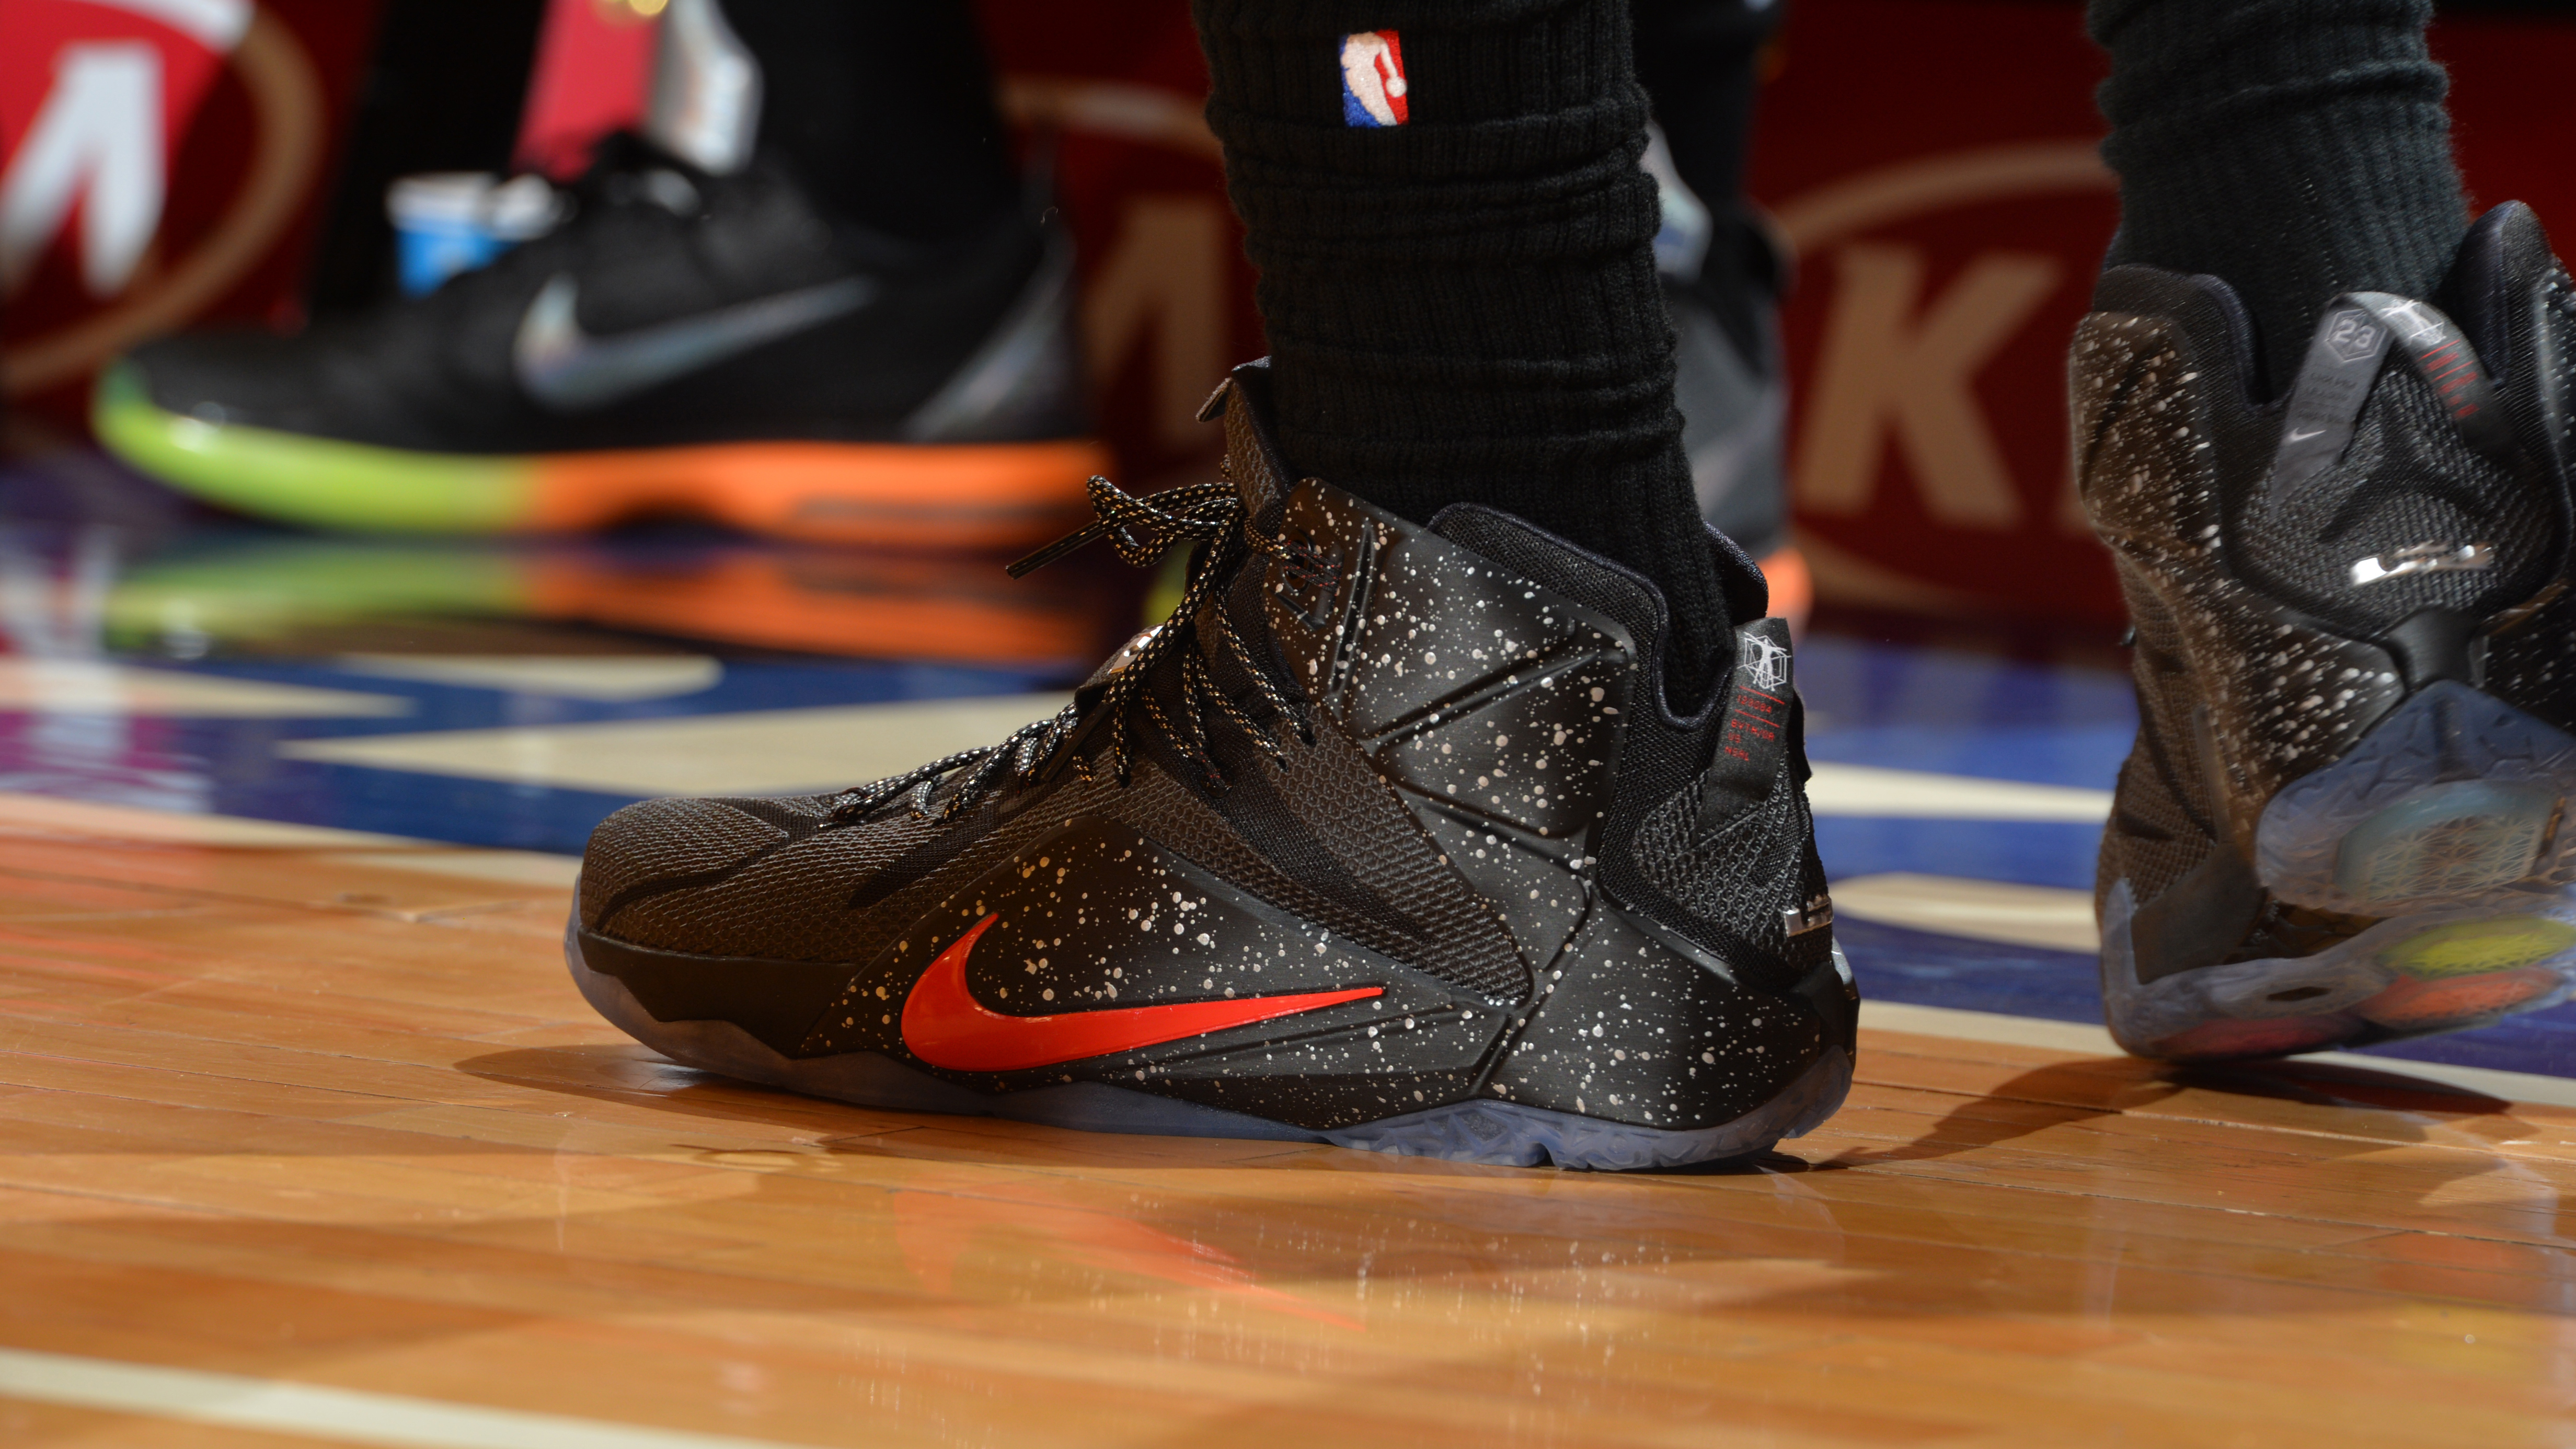 Nba Nike Shoes: Nike Close To Securing NBA Uniform, Apparel Deal From